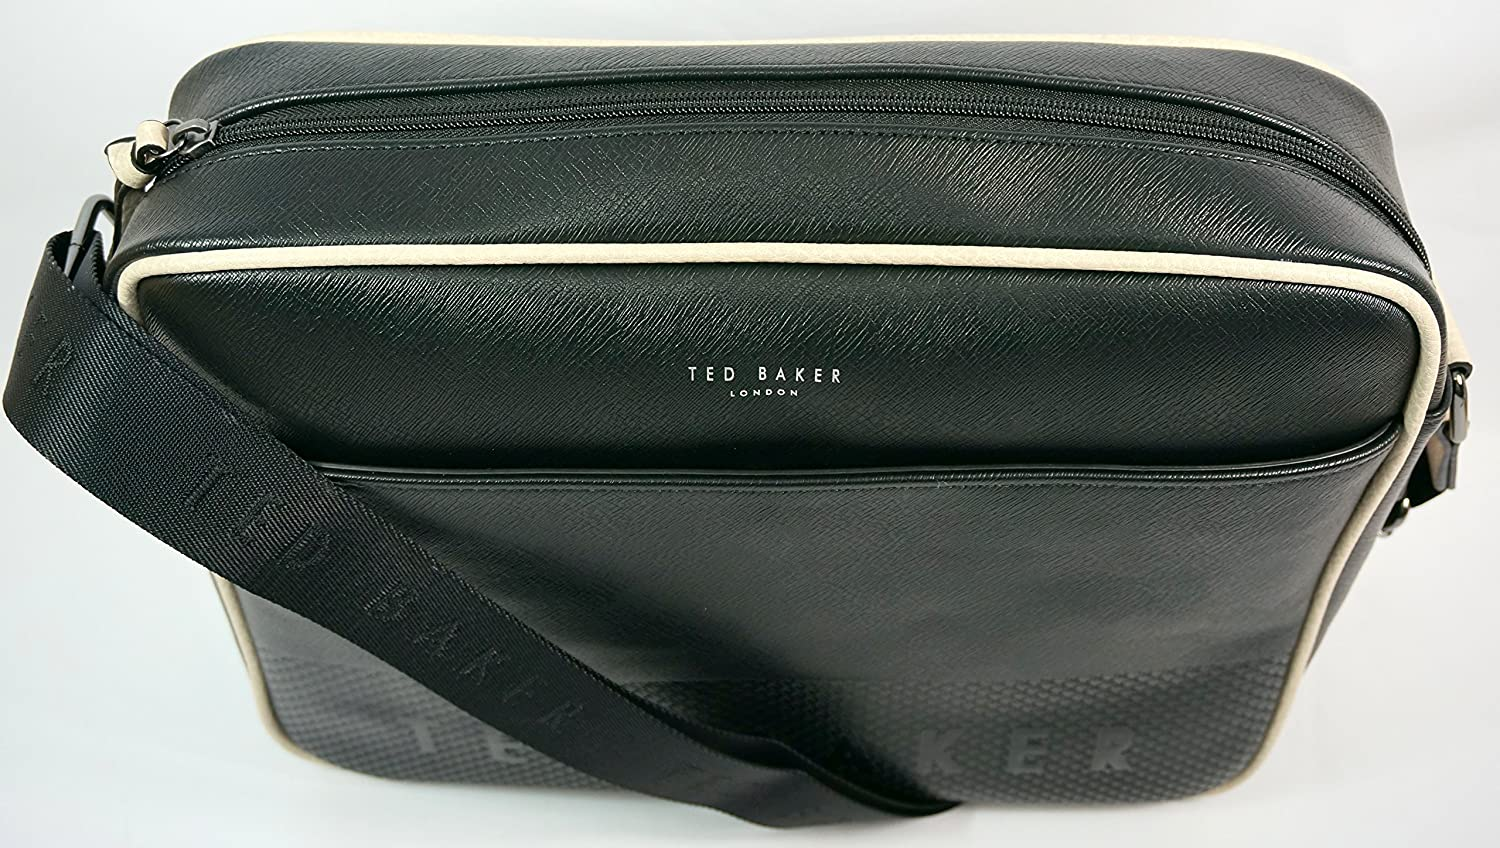 Ted Baker Jaykay Embossed Dispatch Bag Black  Amazon.co.uk  Shoes   Bags e5e78fd2d9124